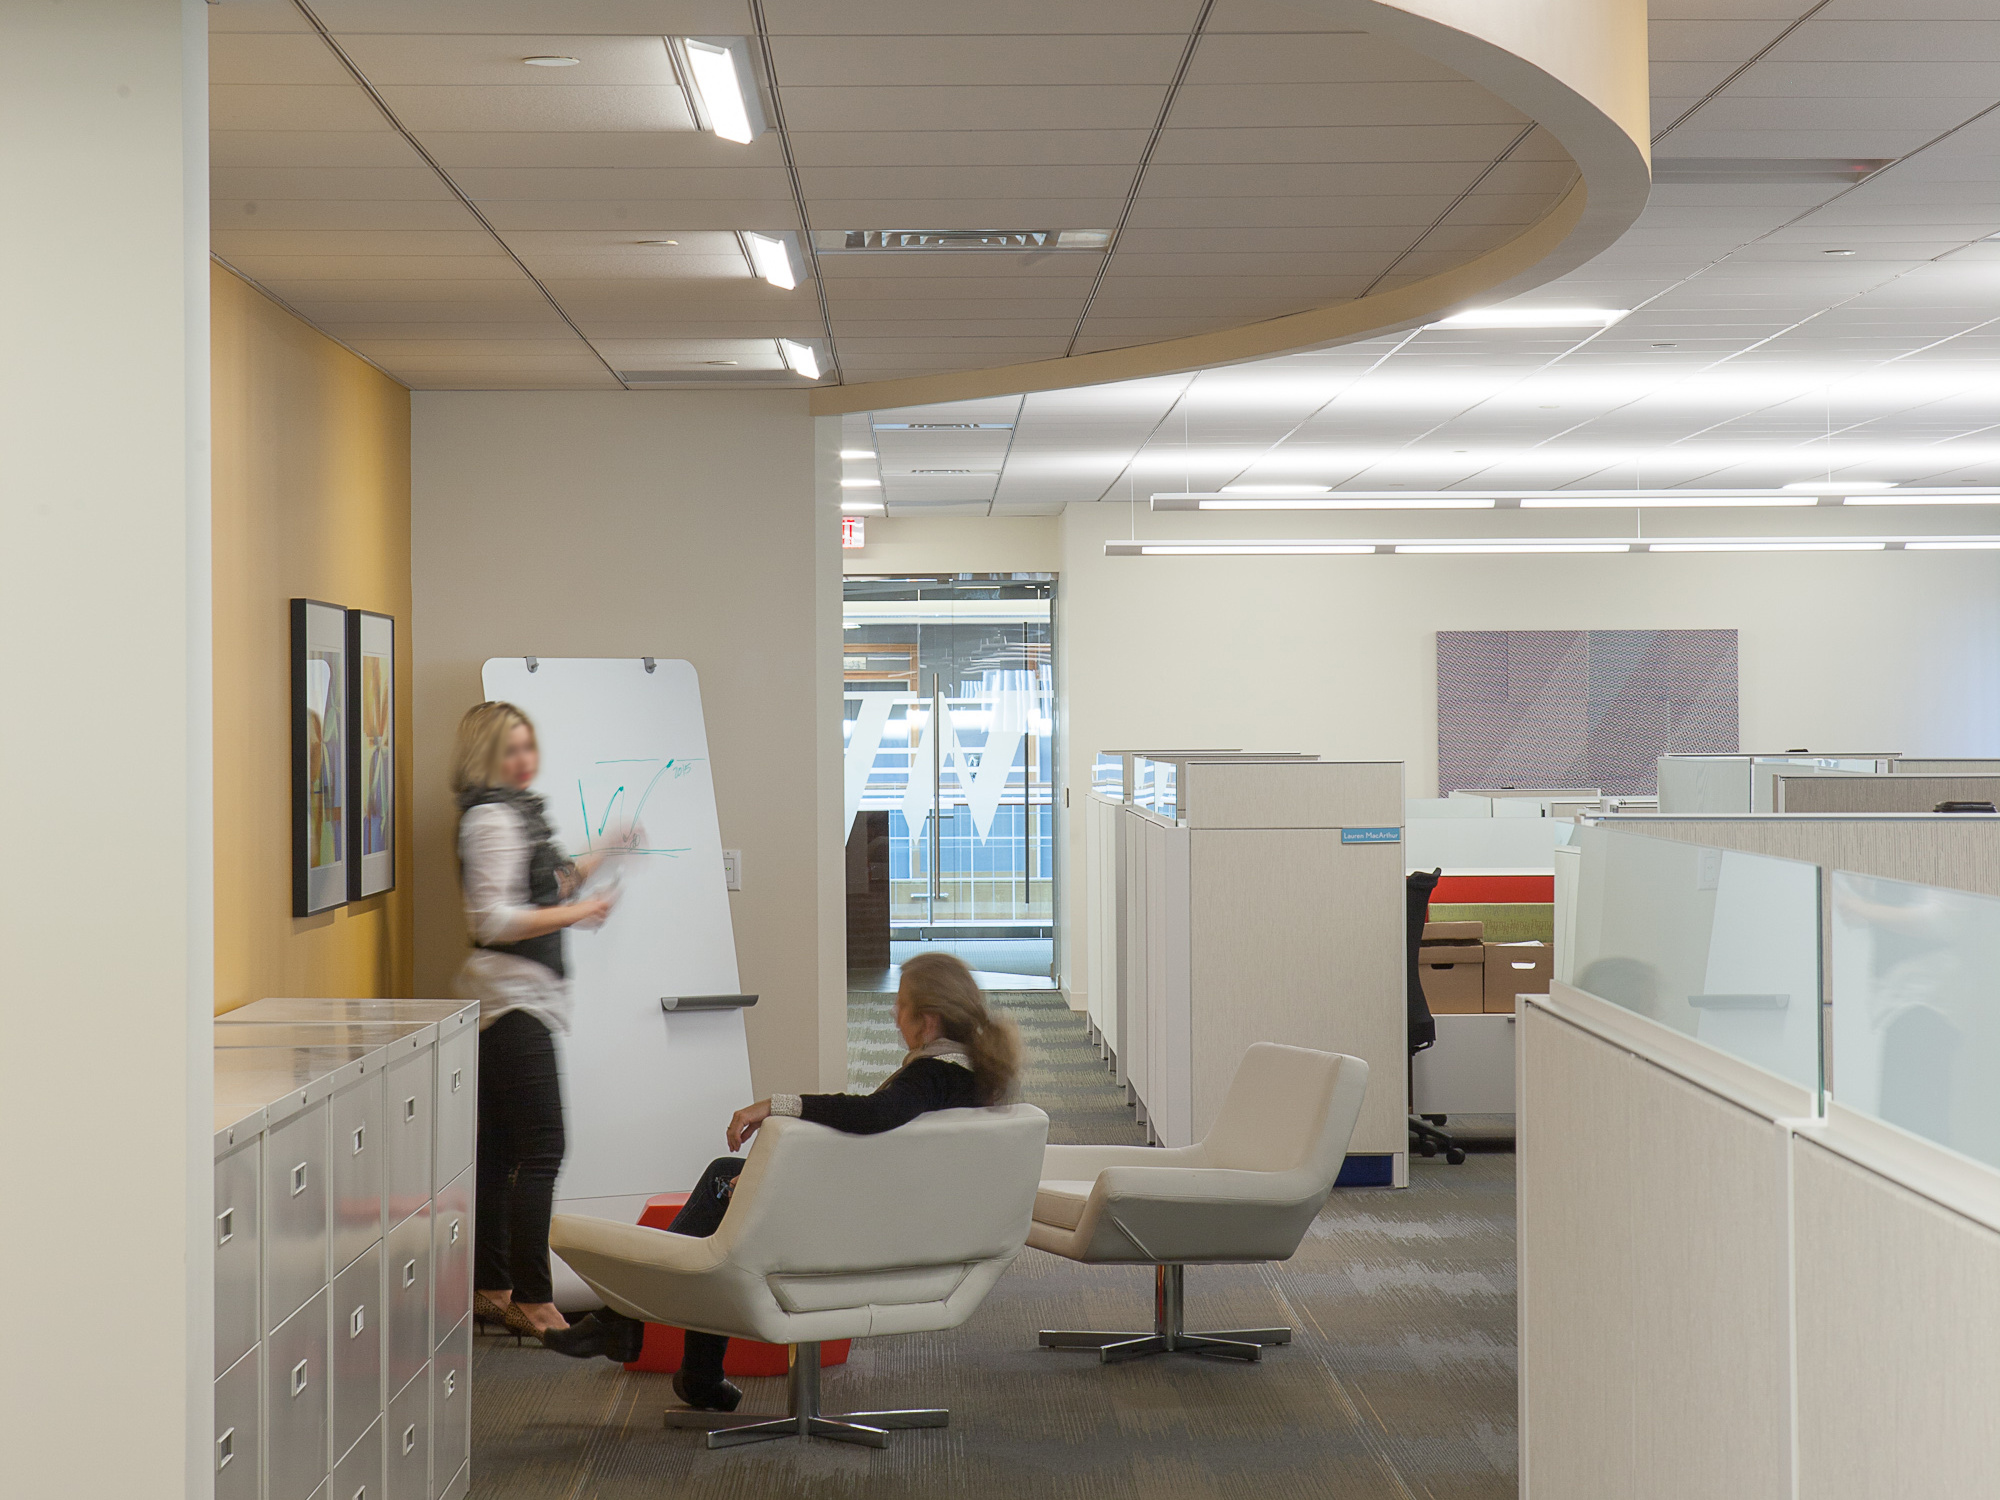 A cozy collaborative area in our Winter Wyman space. Image © Neil Alexander for Visnick & Caulfield